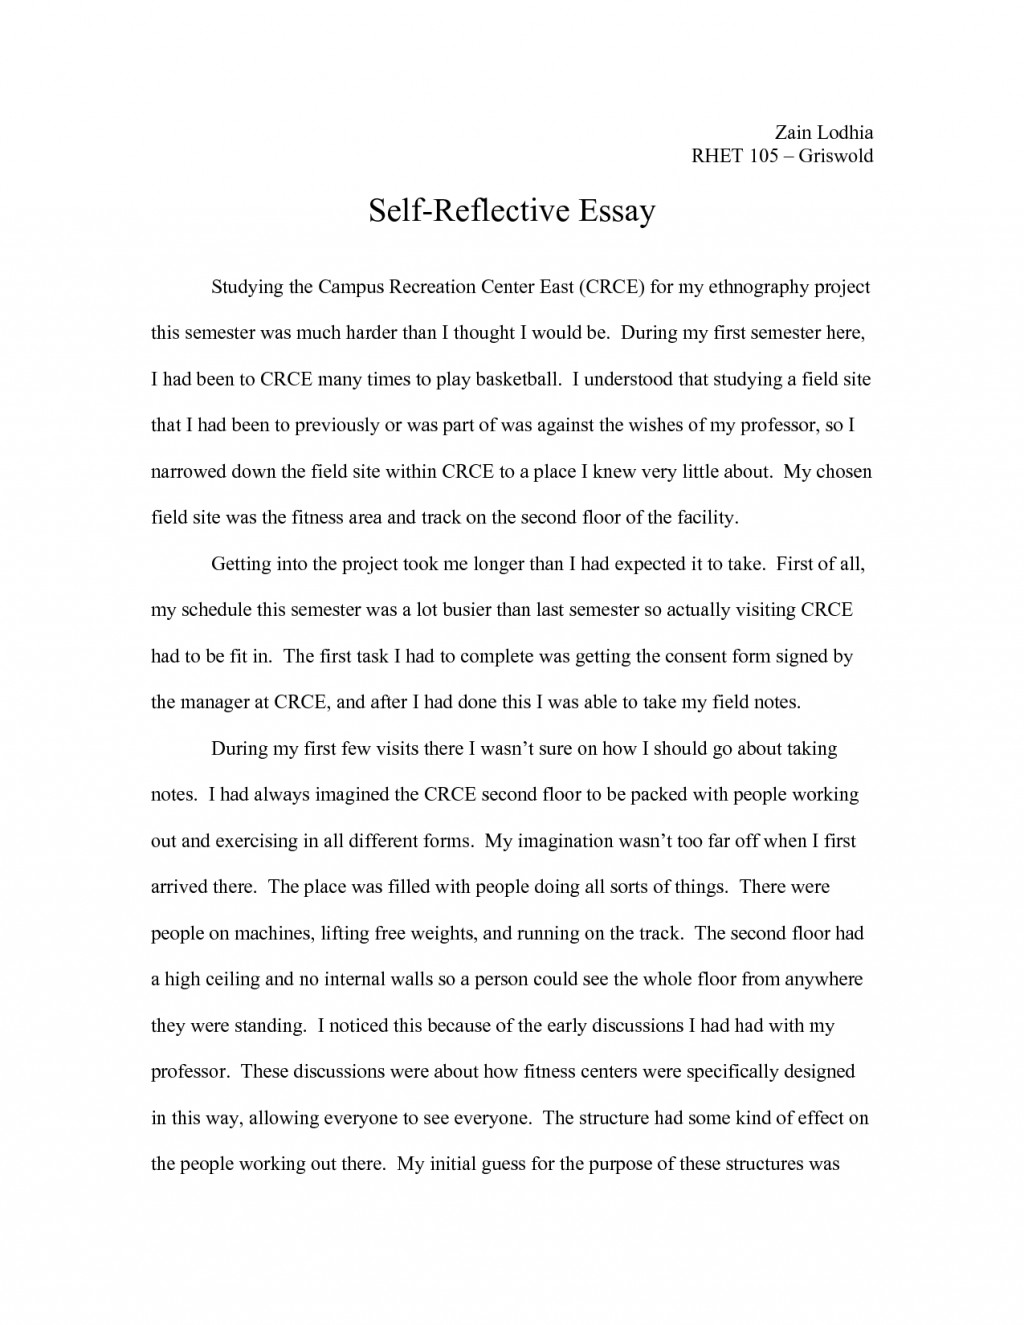 003 Qal0pwnf46 Reflective Essays Beautiful Essay Examples Sample Pdf About Writing English 101 Large